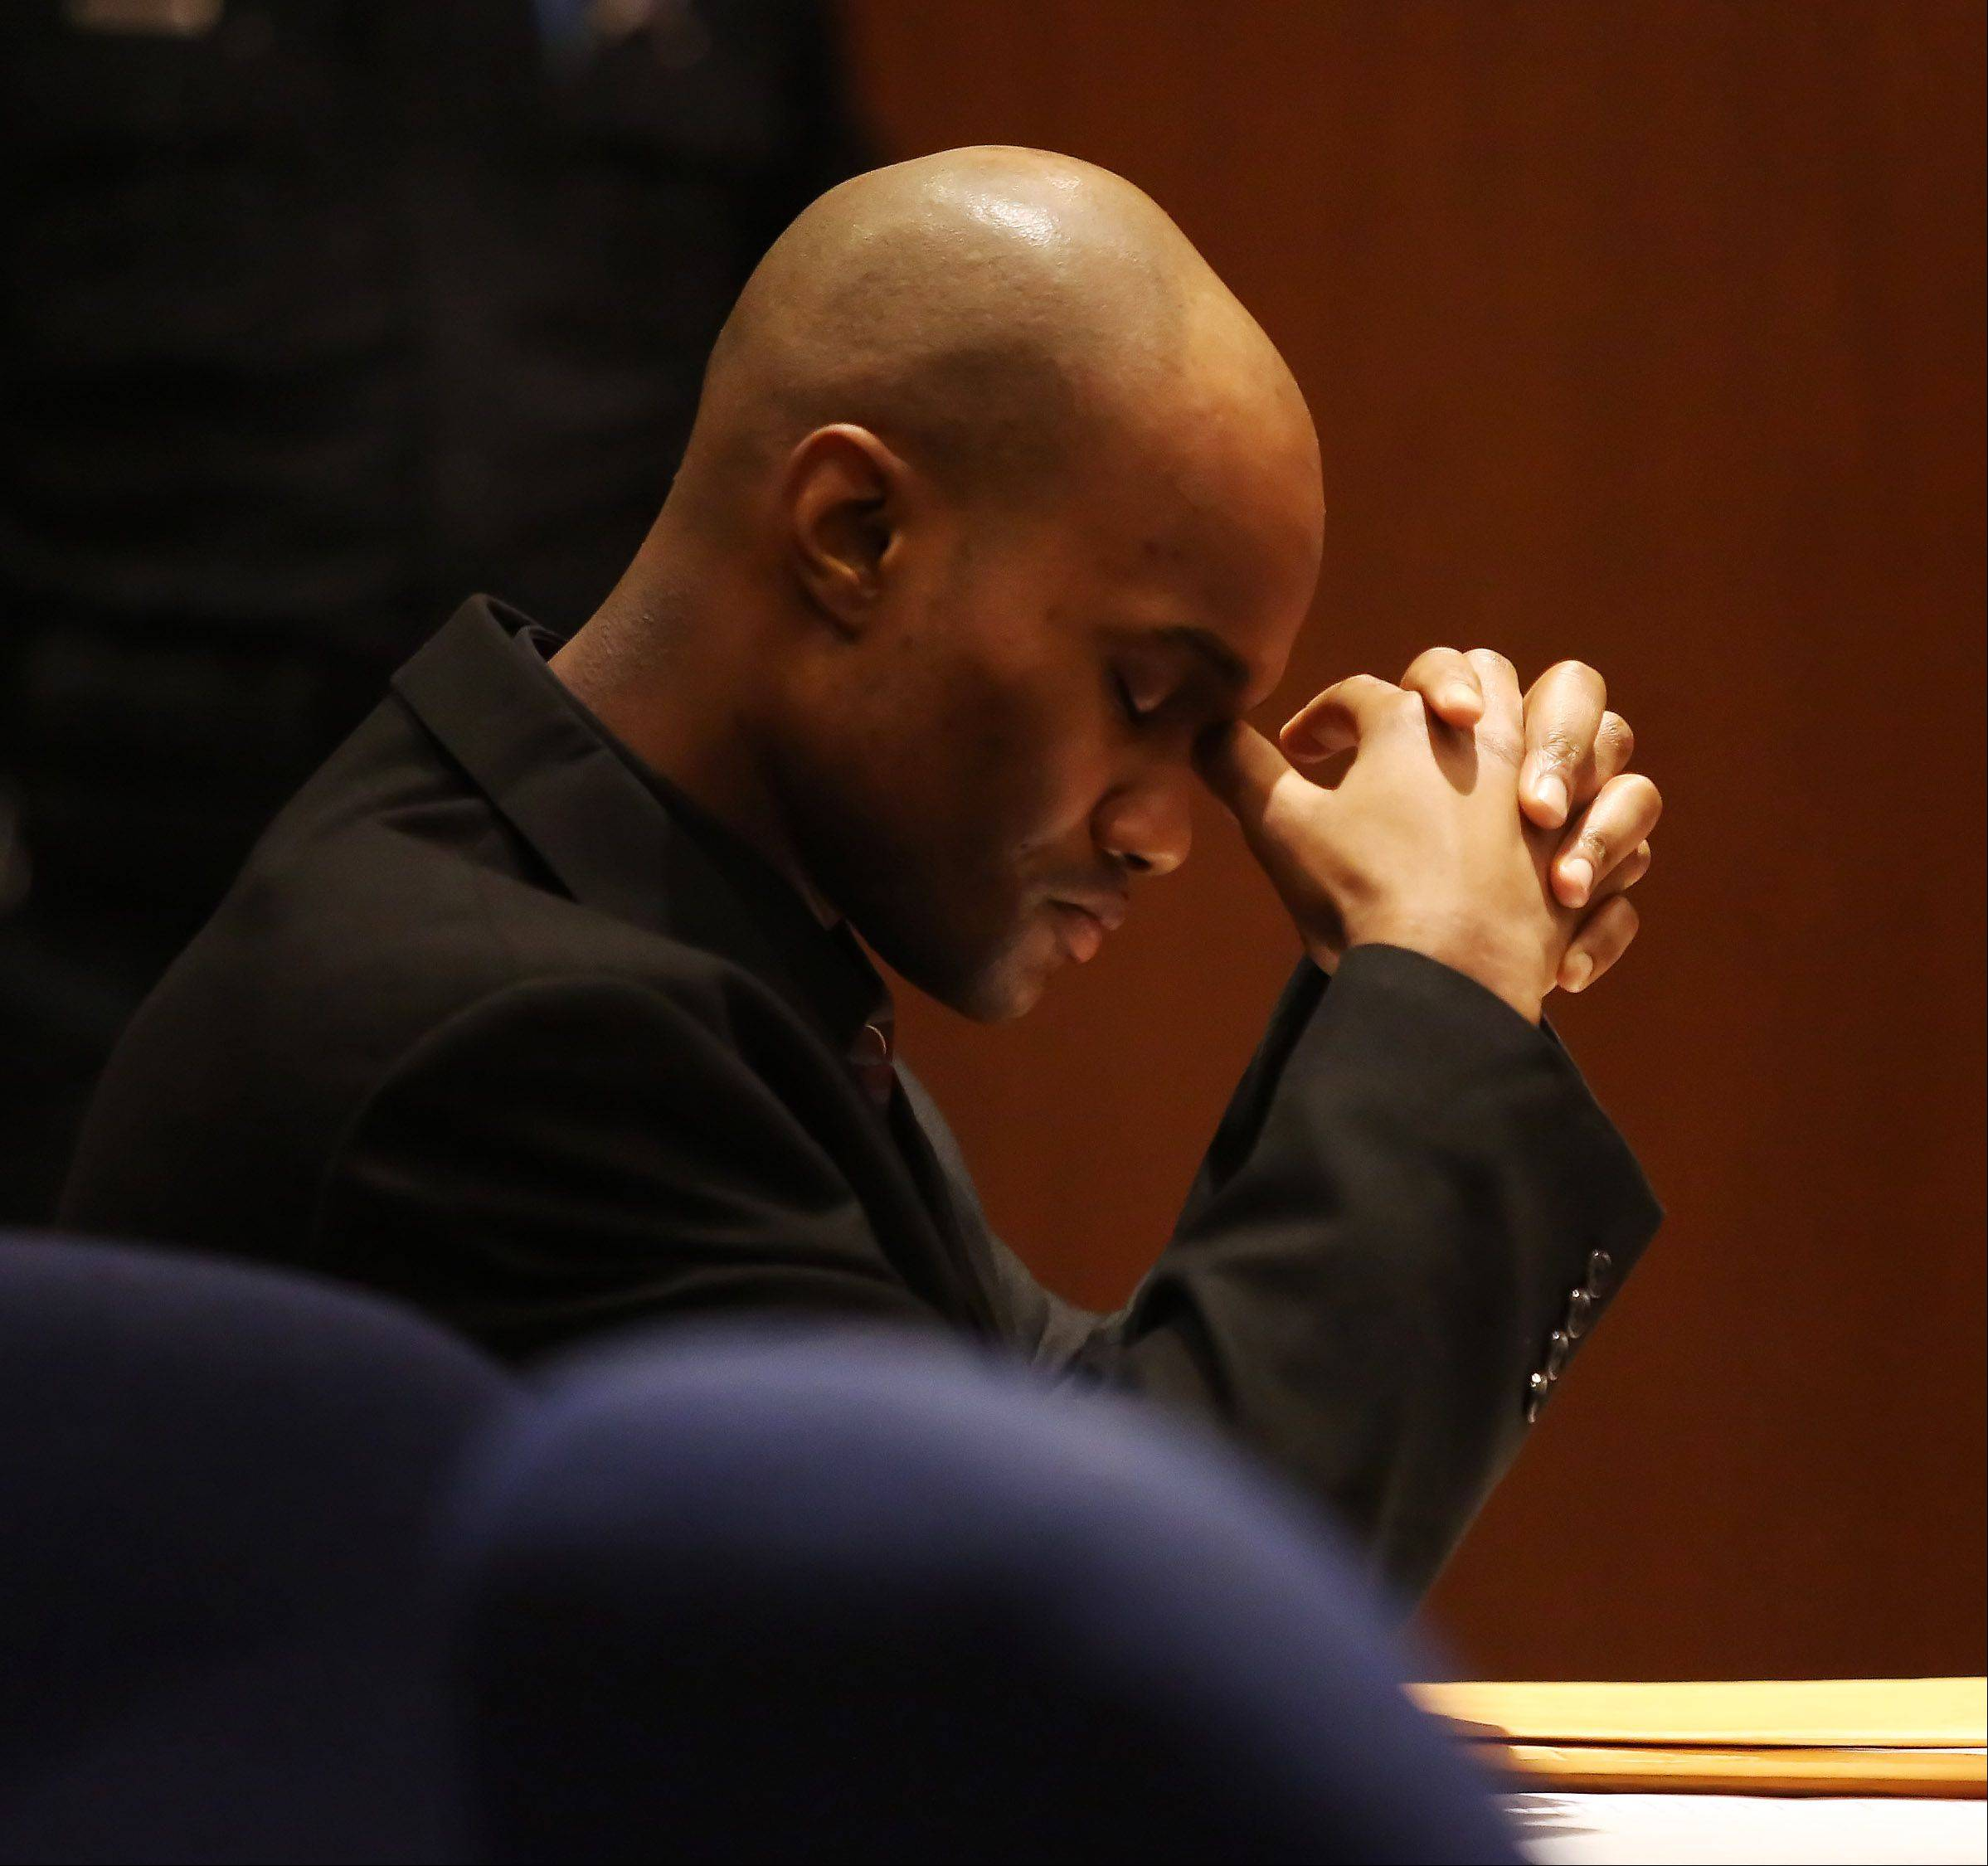 Montago Suggs of Kenosha, Wis., sits at his table during his murder trial Tuesday at the Lake County courthouse in Waukegan. Suggs is accused of killing Melinda Morrell of Round Lake Park during a robbery at a store in Waukegan in 2007.